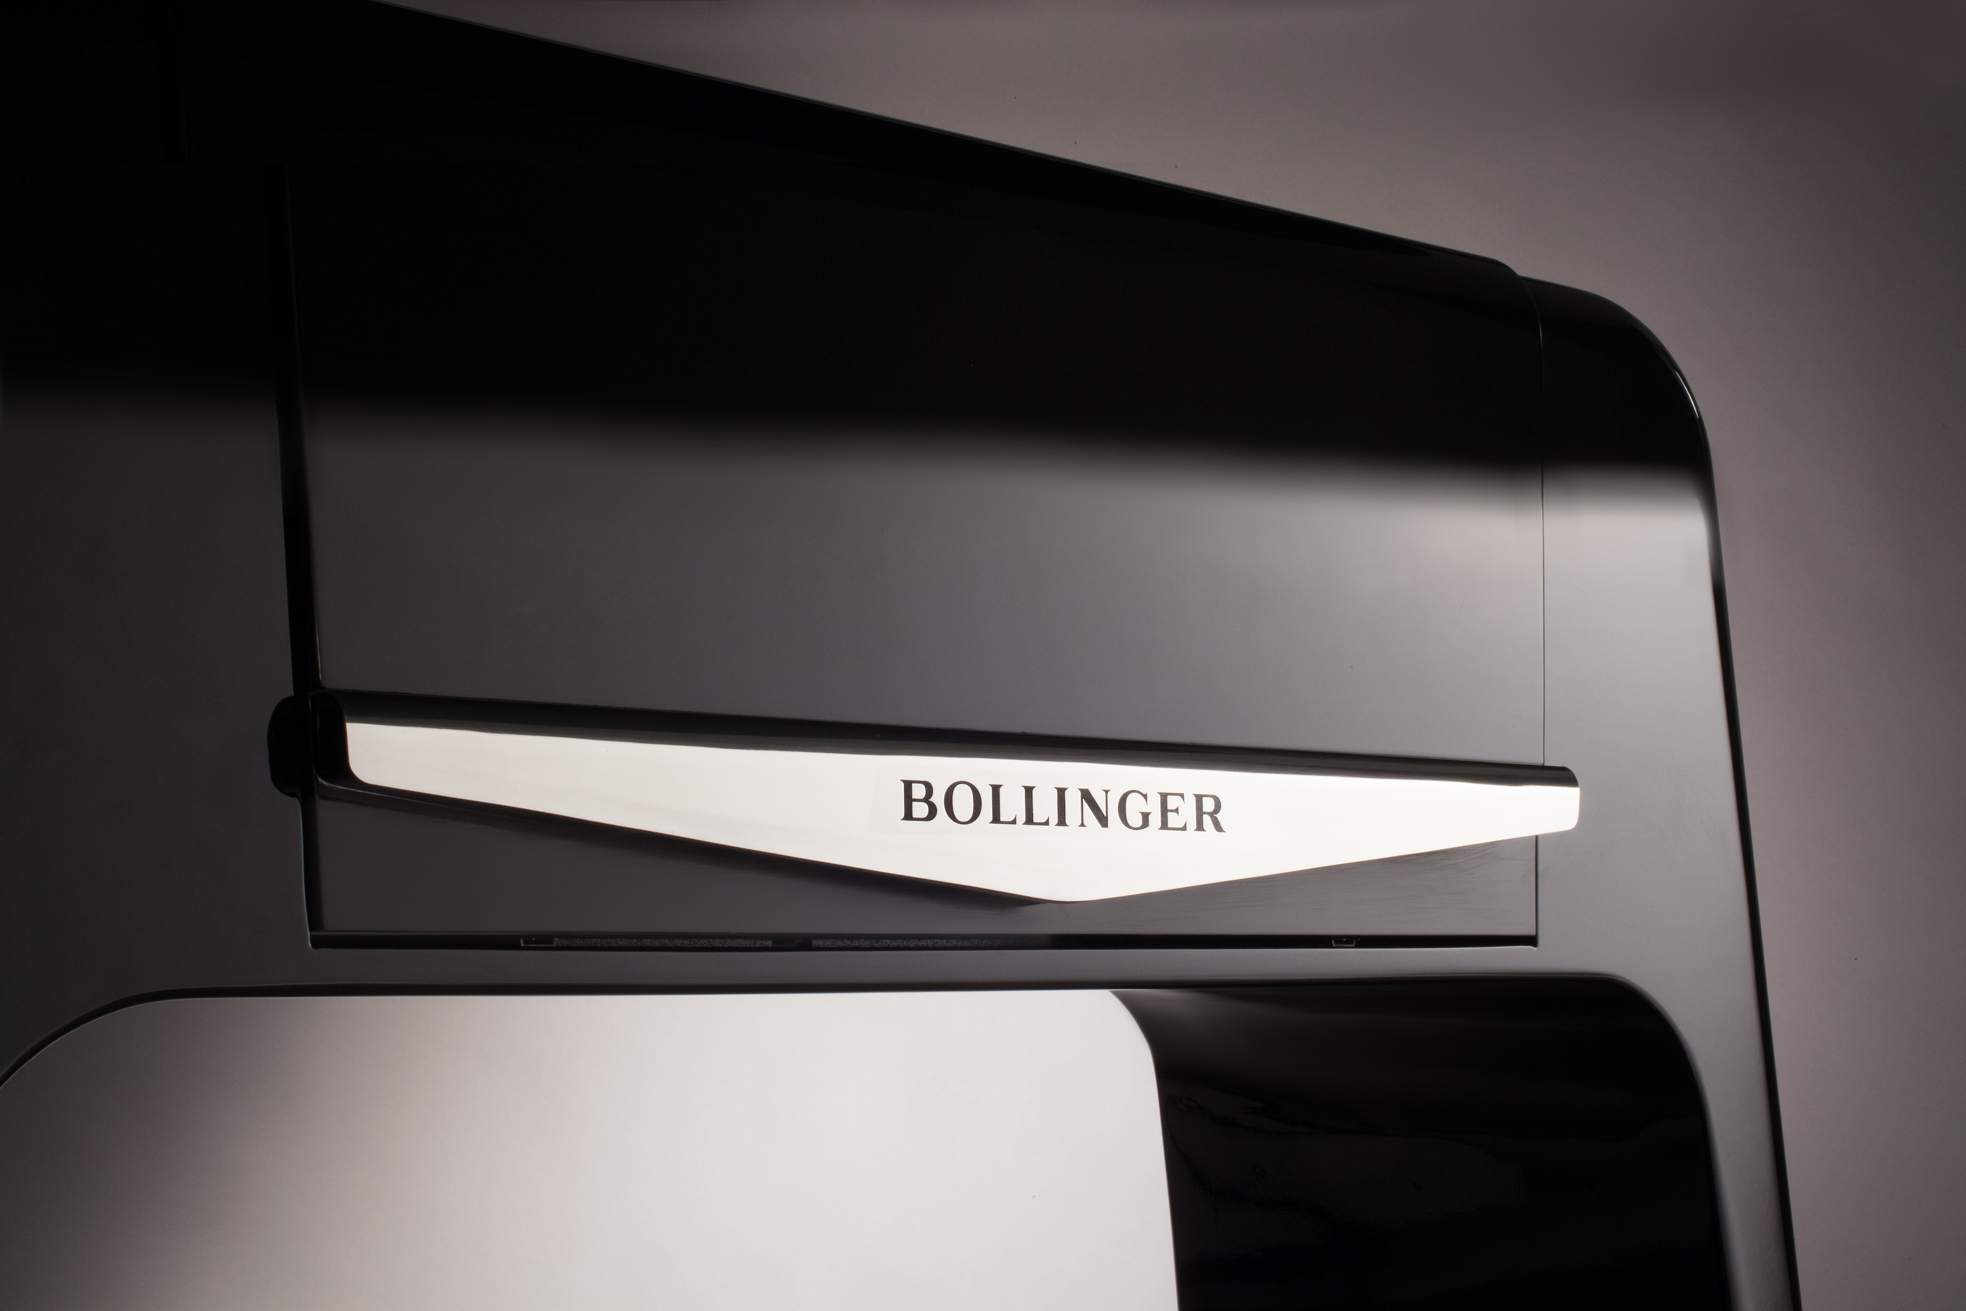 BOLLINGER_Experience_MOBILIER_bar_Spiritueux-ChampagnePLANET-DESIGN-PARIS-Eric-Berthes_02.jpg